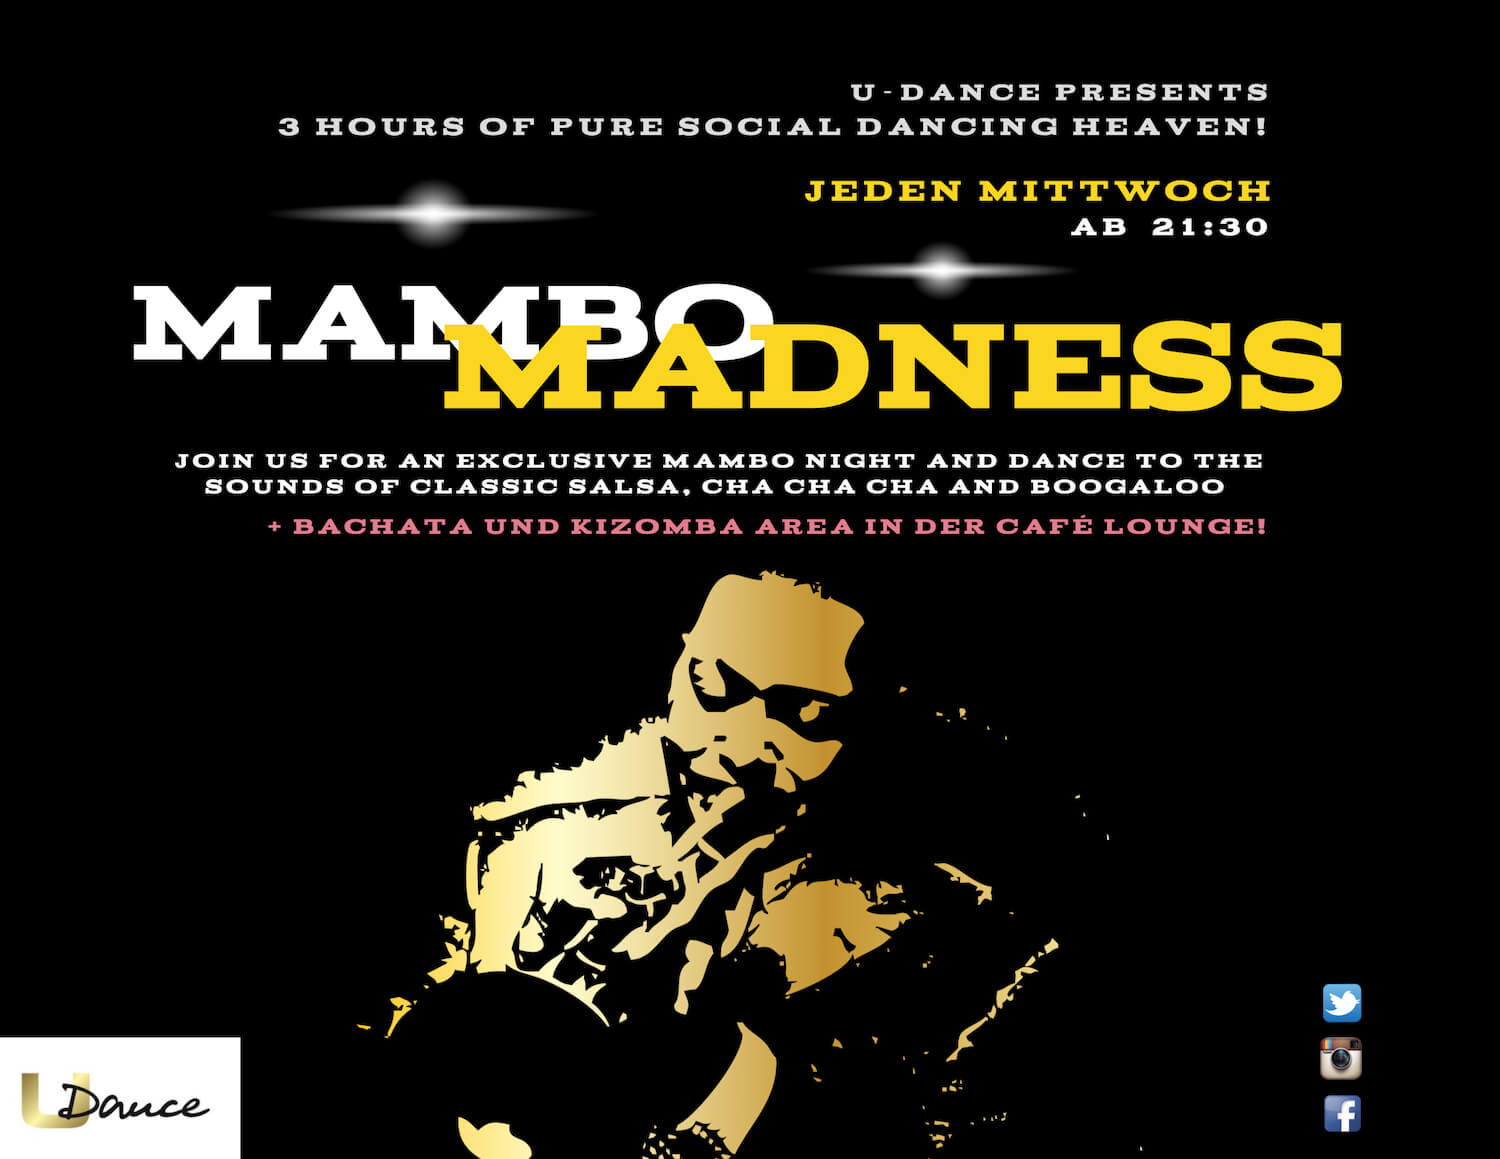 JEDEN MITTWOCH MAMBO MADNESS PARTY in Hannover